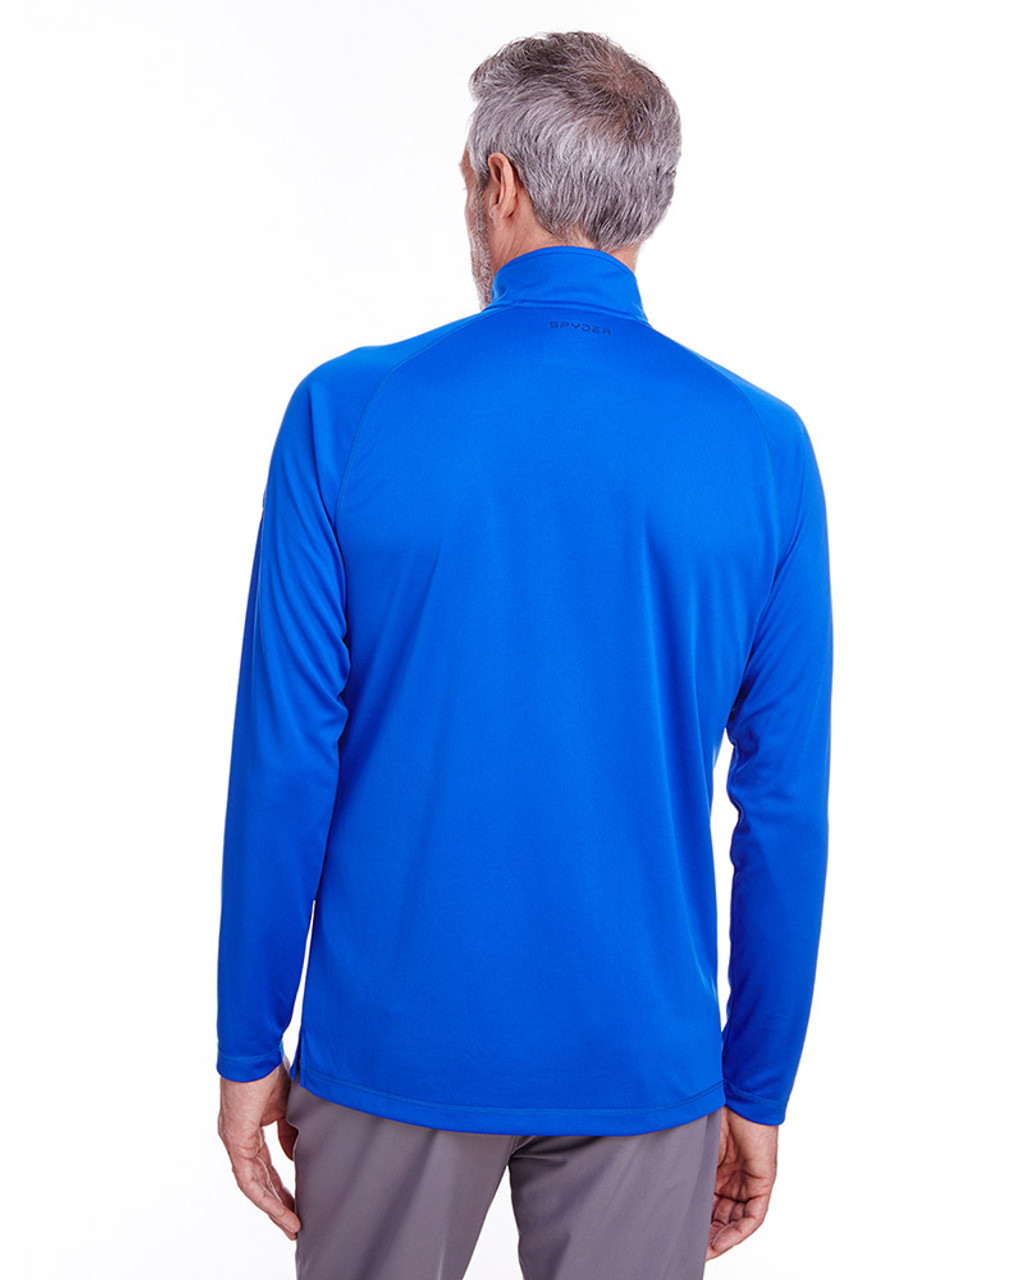 Royal - back, S16797 Spyder Men's Freestyle Half-Zip Pullover Sweatshirt | Blankclothing.ca